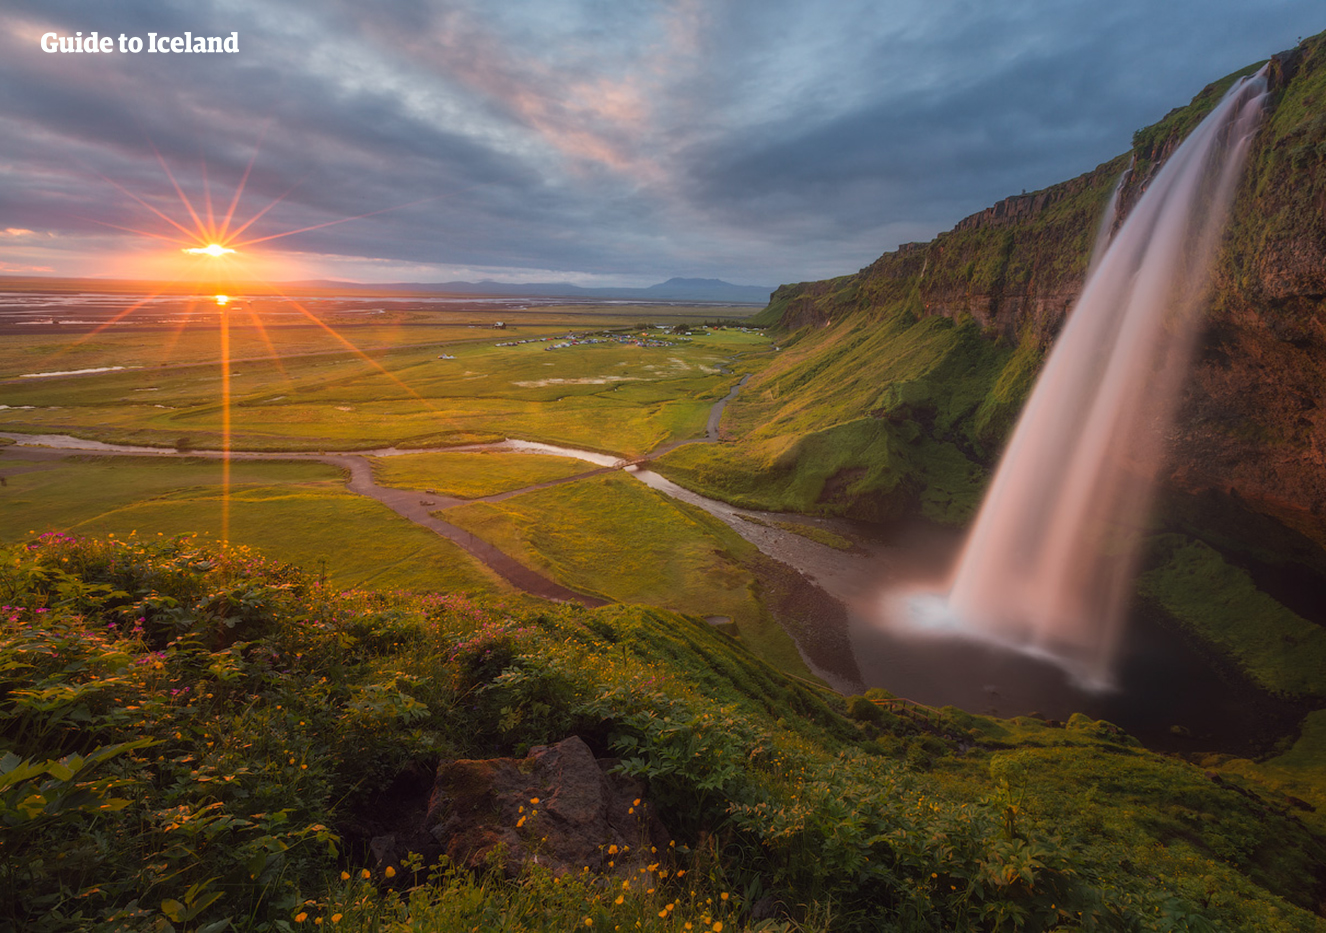 Scenic 3 Day Budget Self Drive Tour of Iceland with Hot Springs & the Golden Circle - day 3